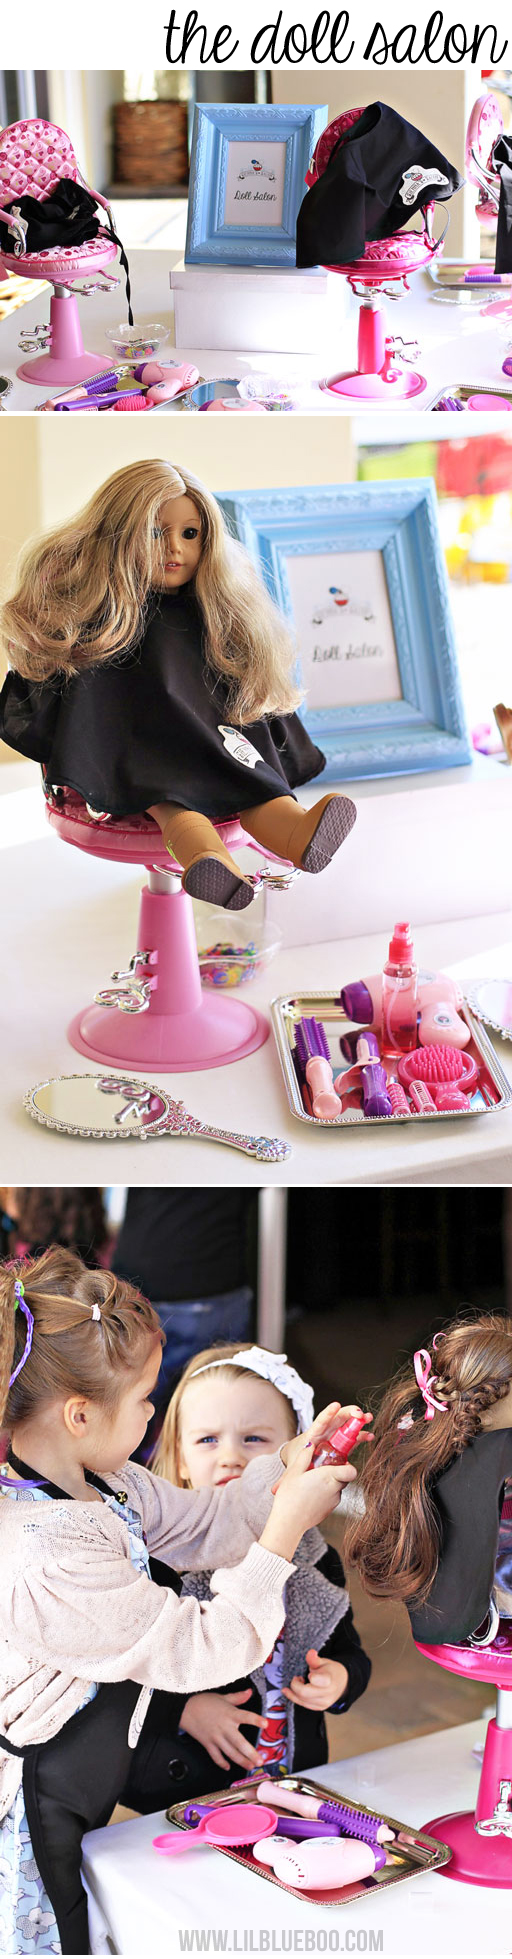 American Girl Sized Salon Party Station via lilblueboo.com #americangirl #party #diy